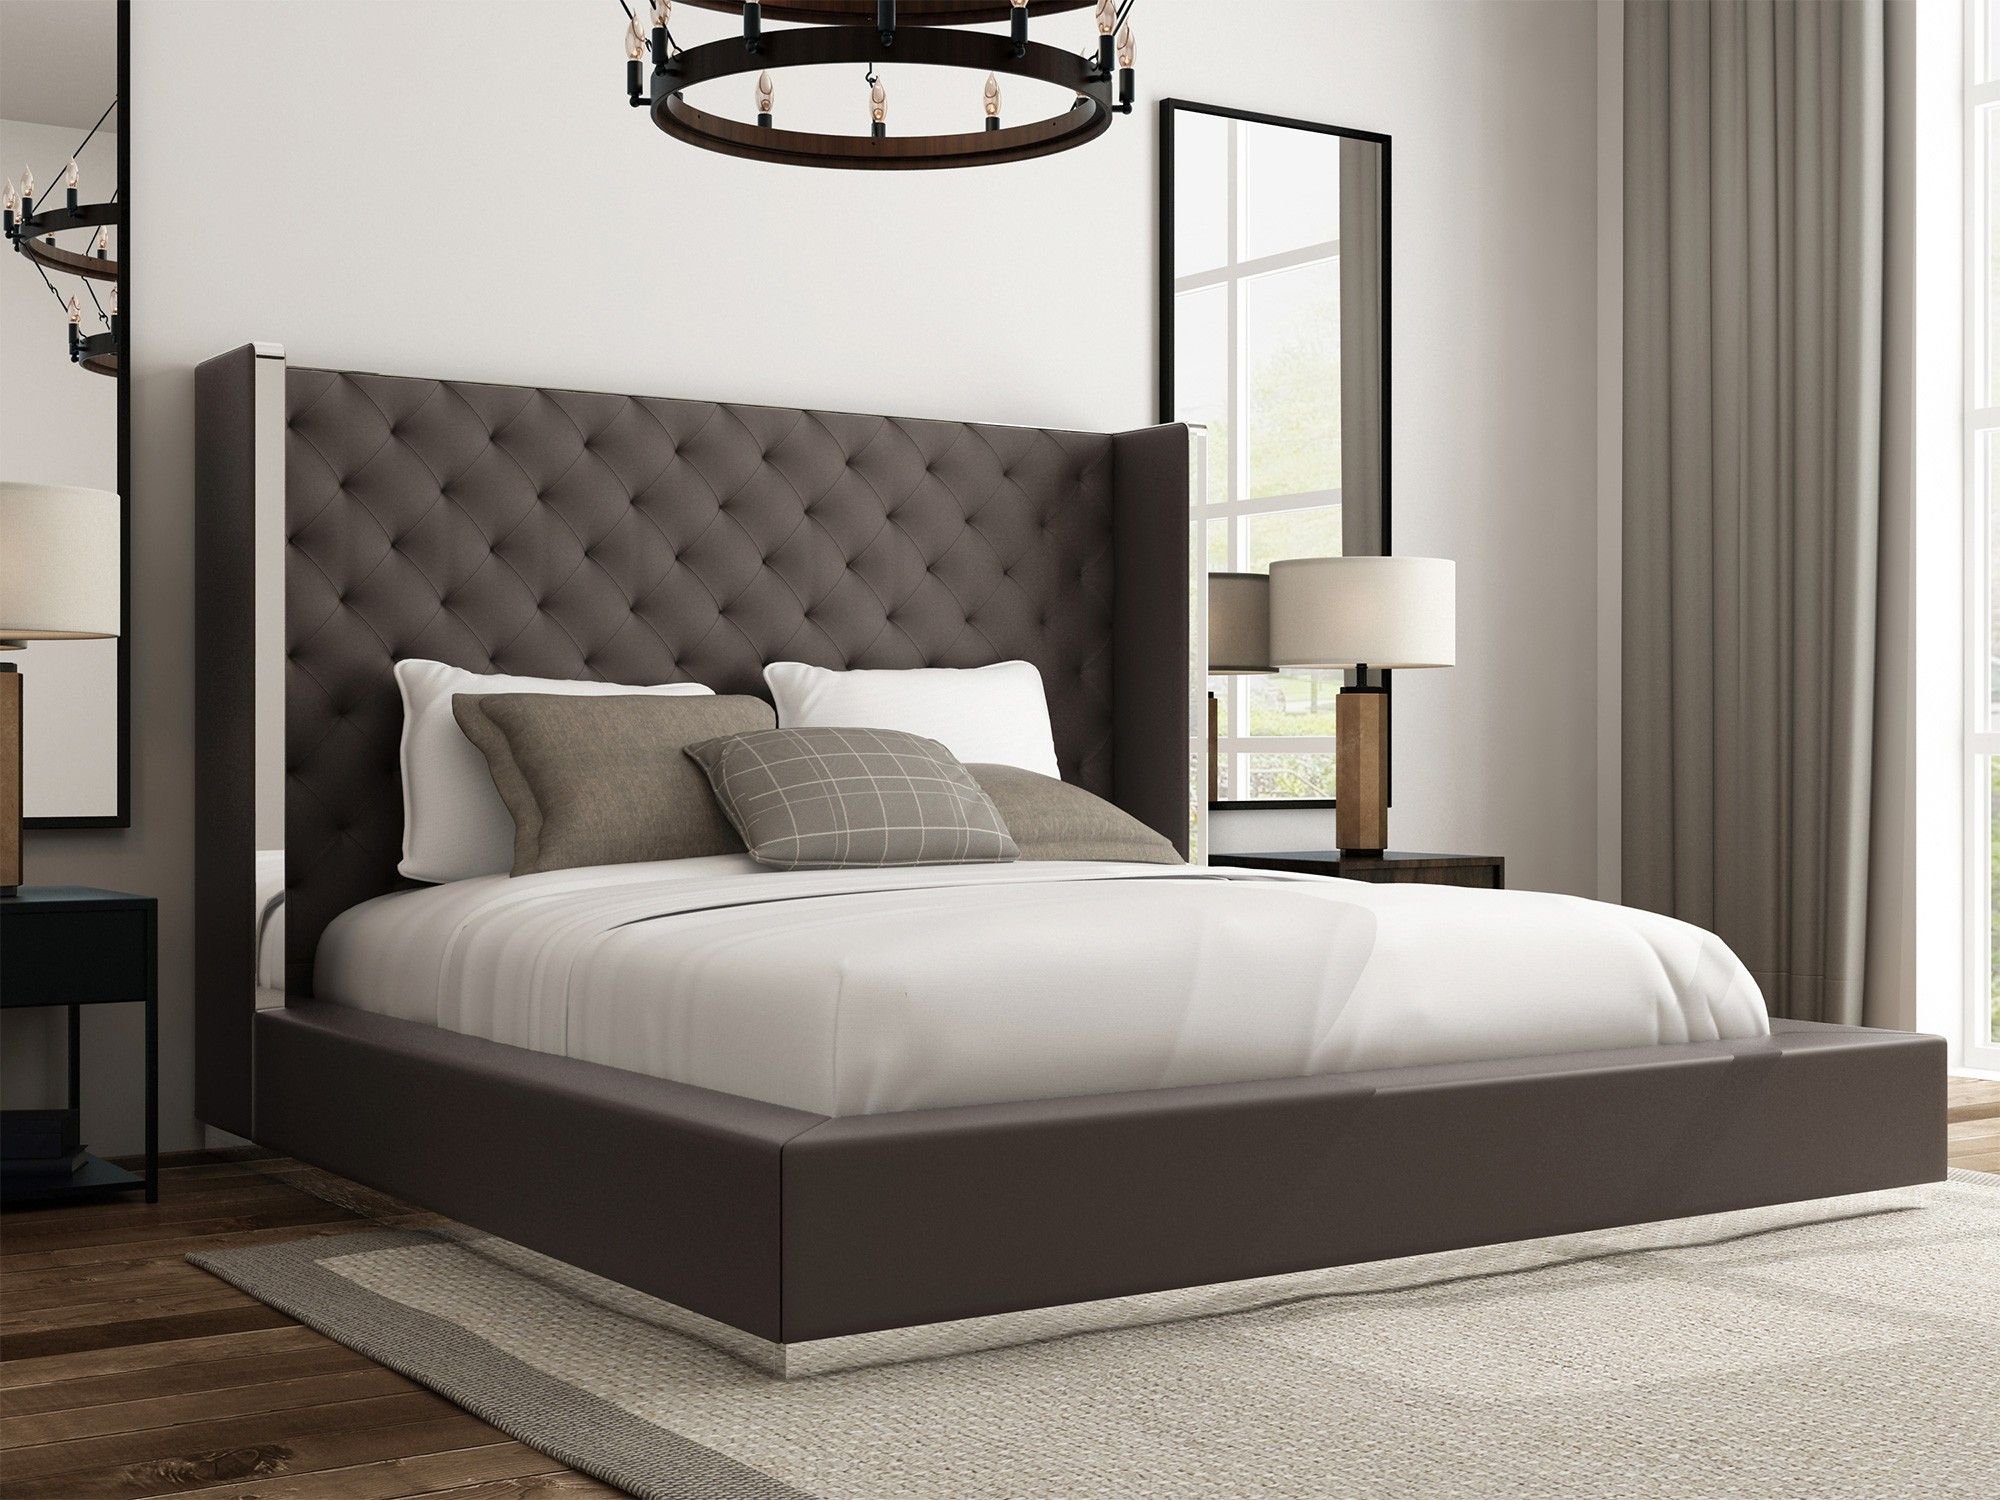 Pin by Carina on Bedroom Modern platform bed, Bed, King beds